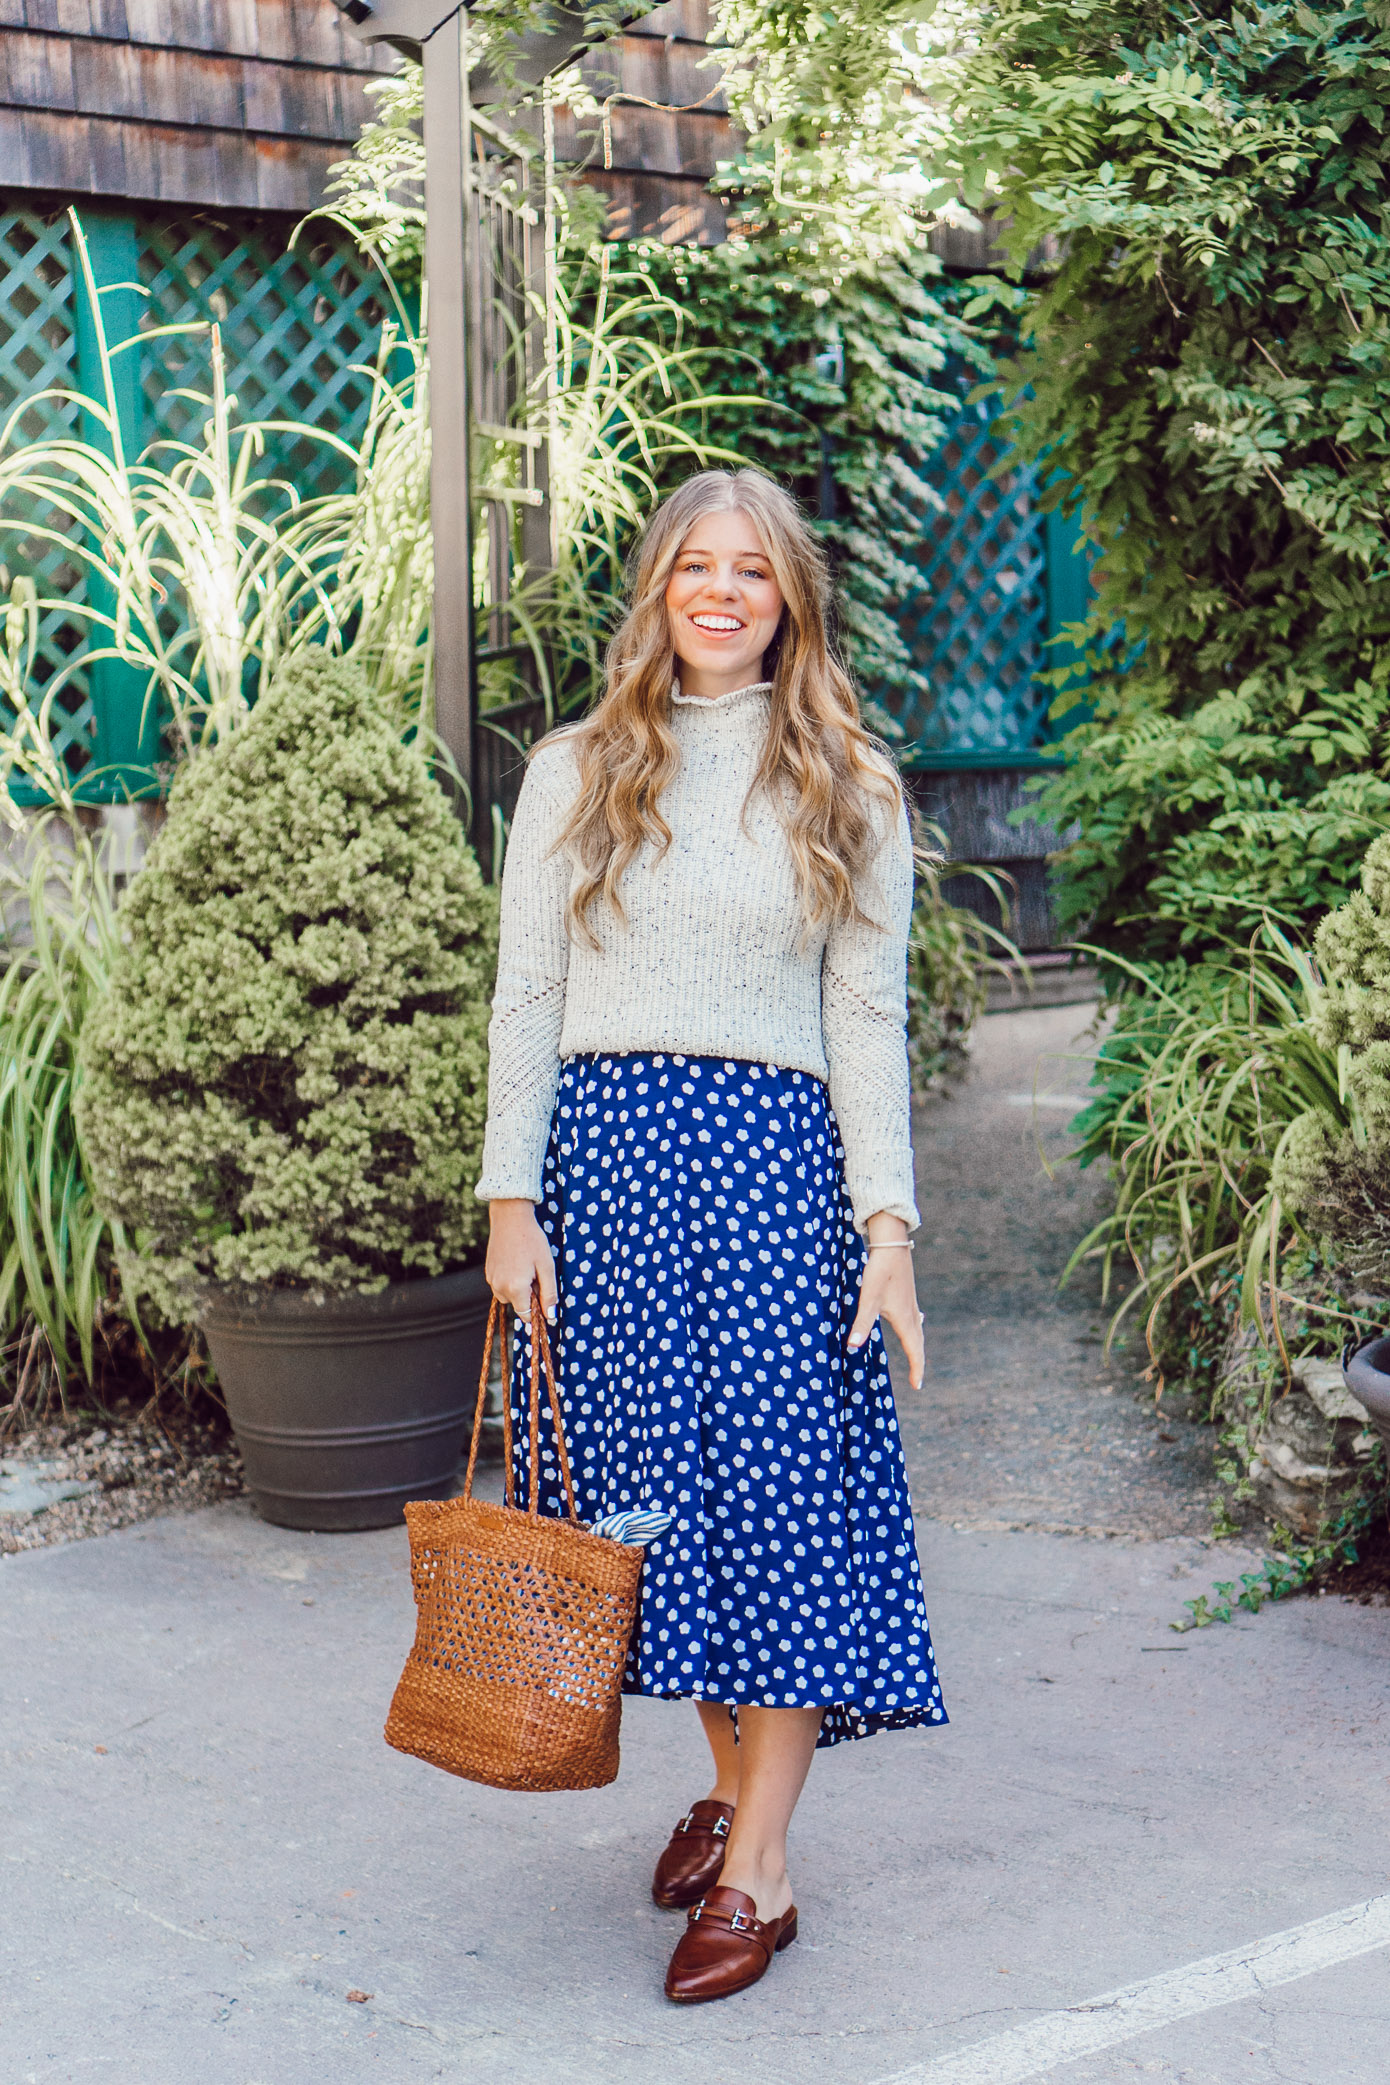 Fall Polka Dots | How to Style a Dress as a Skirt for Fall featured on Louella Reese